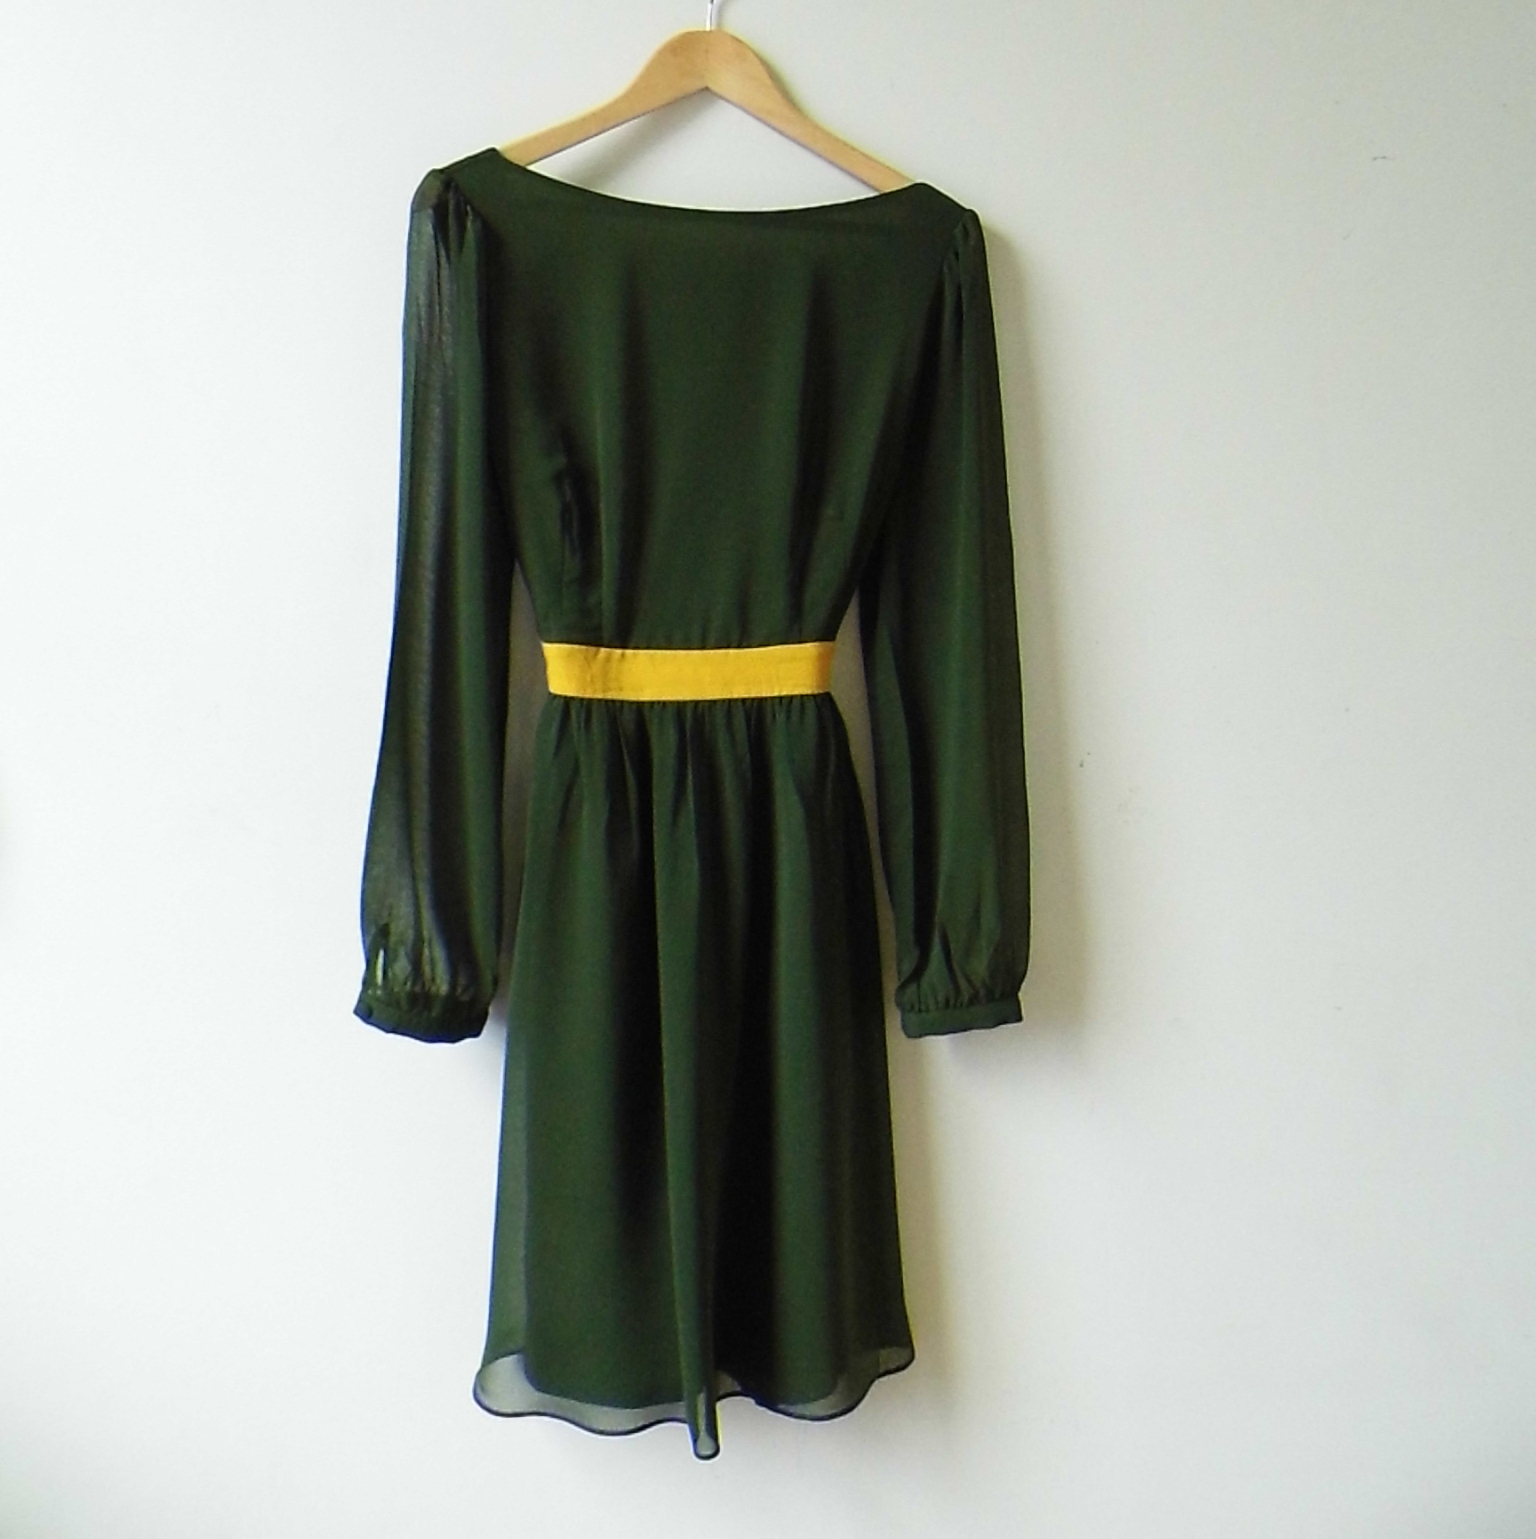 Green cocktail dress sleeves yellow band